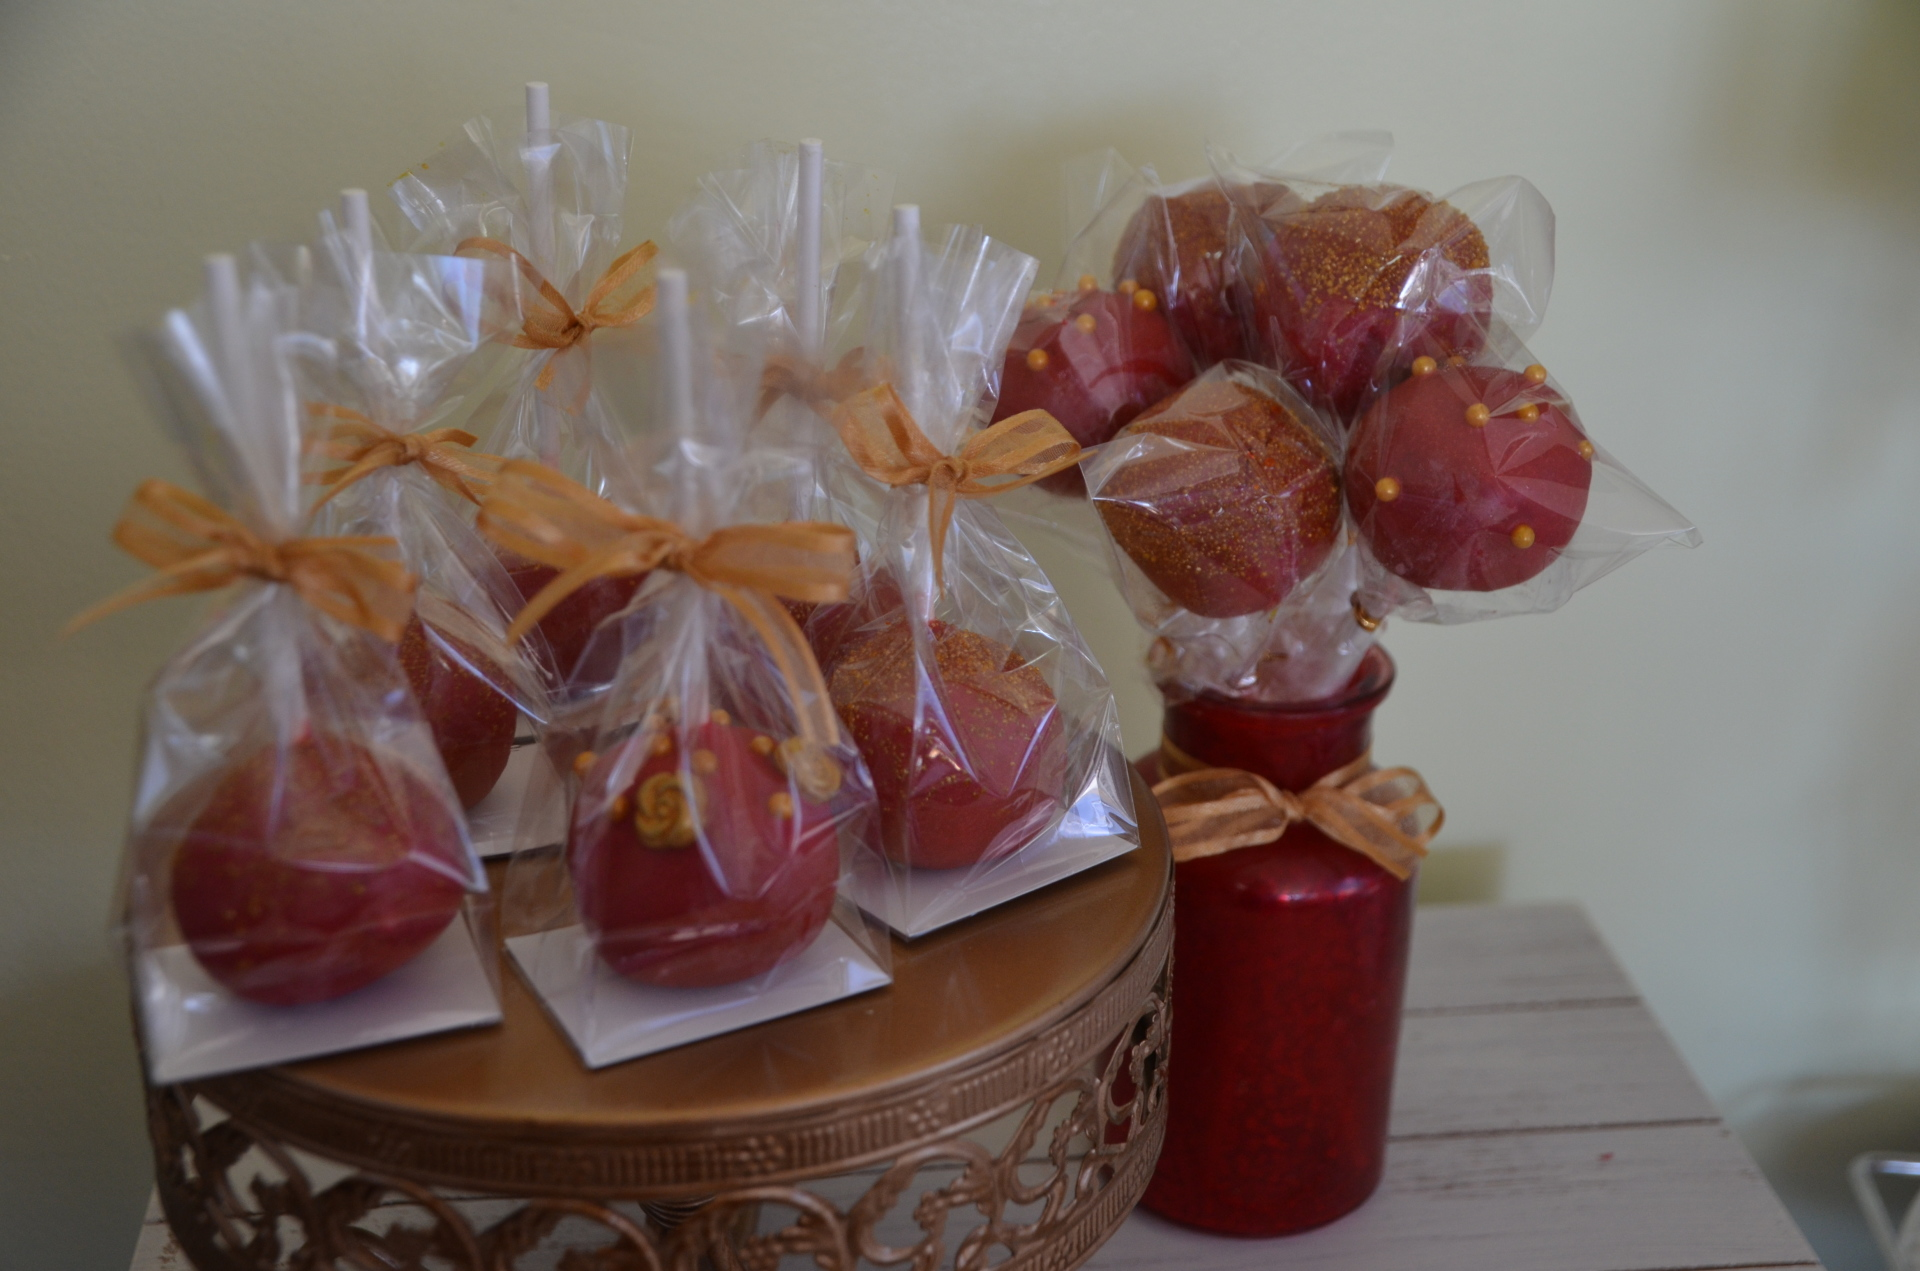 Chinese New Year Cake pops